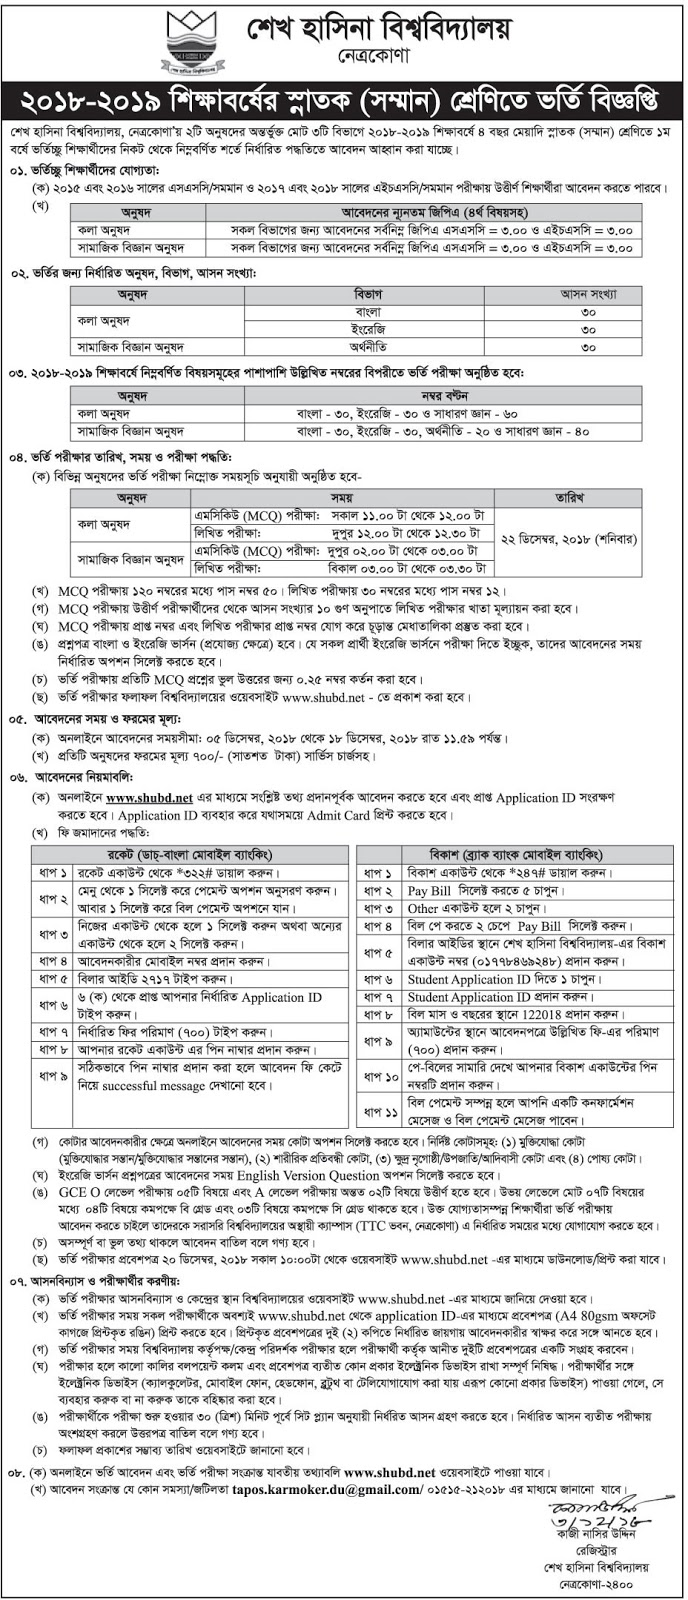 Pabna University of Science & Technology (PUST) Admission Test Circular 2018-2019